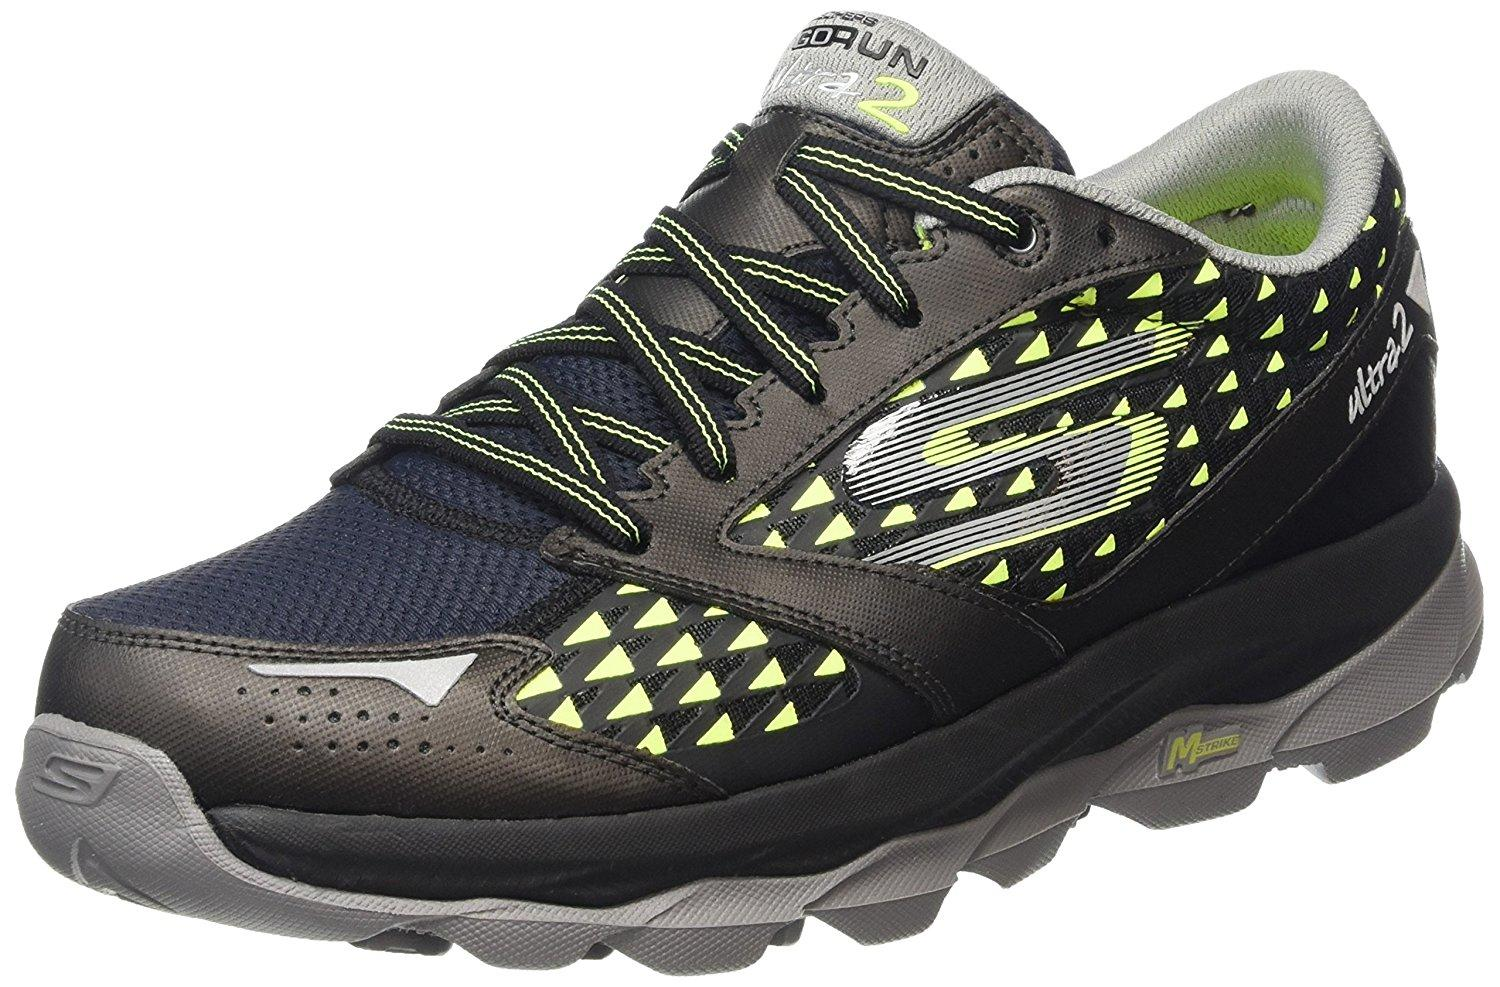 Skechers GOrun Ultra 2 Review - Buy Or Not In Oct 2017?